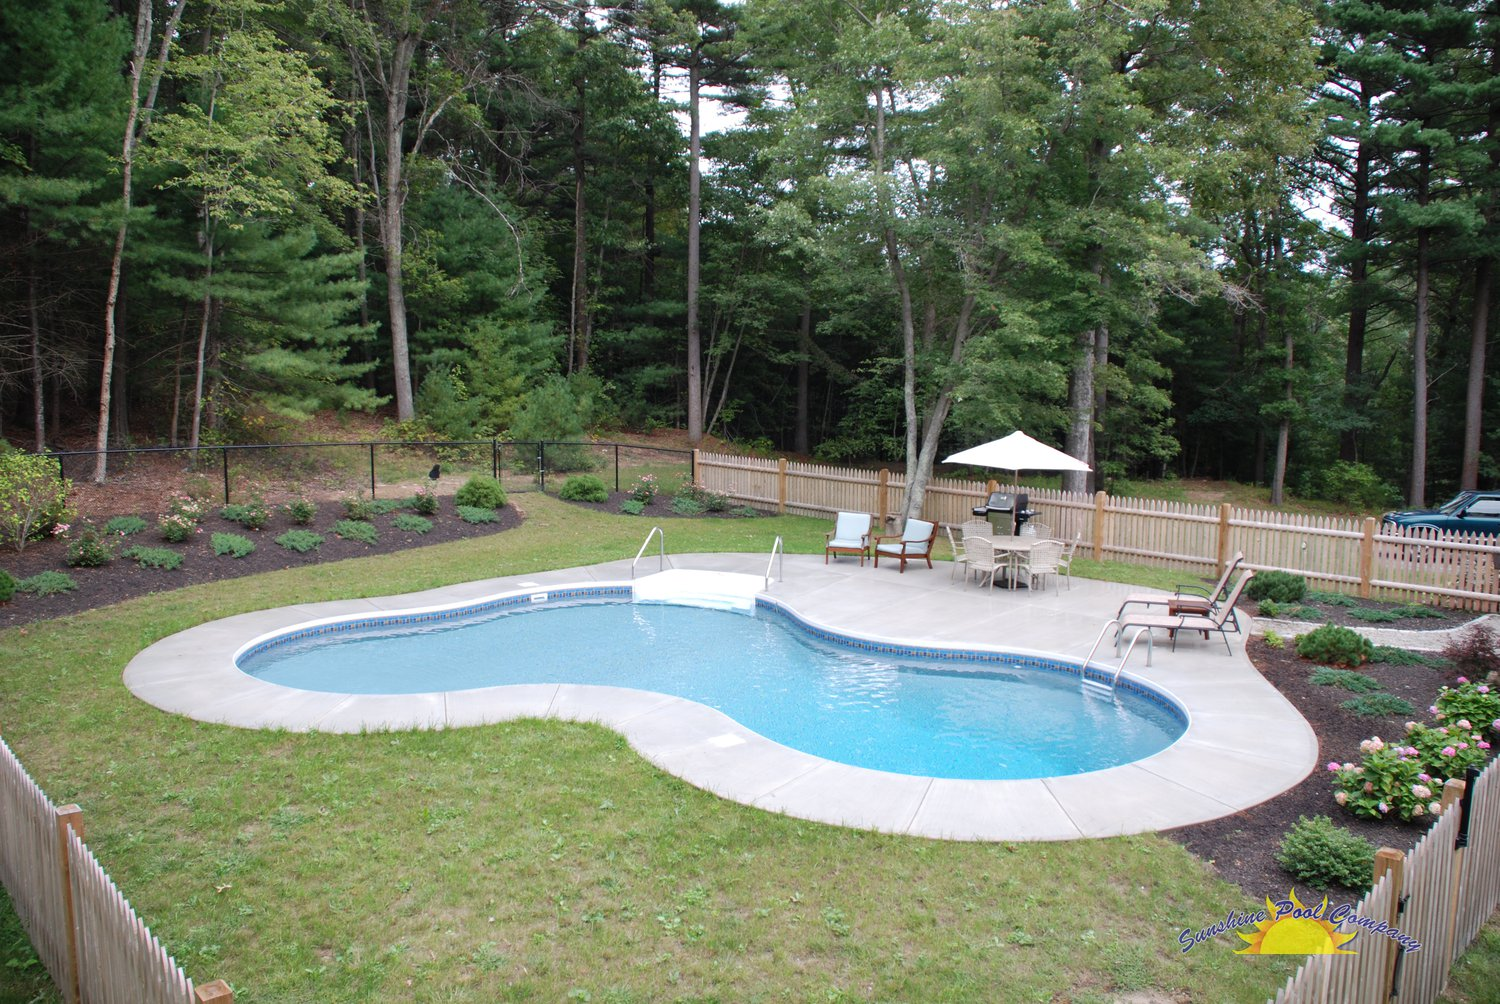 Sunshine Pool Company Our Store